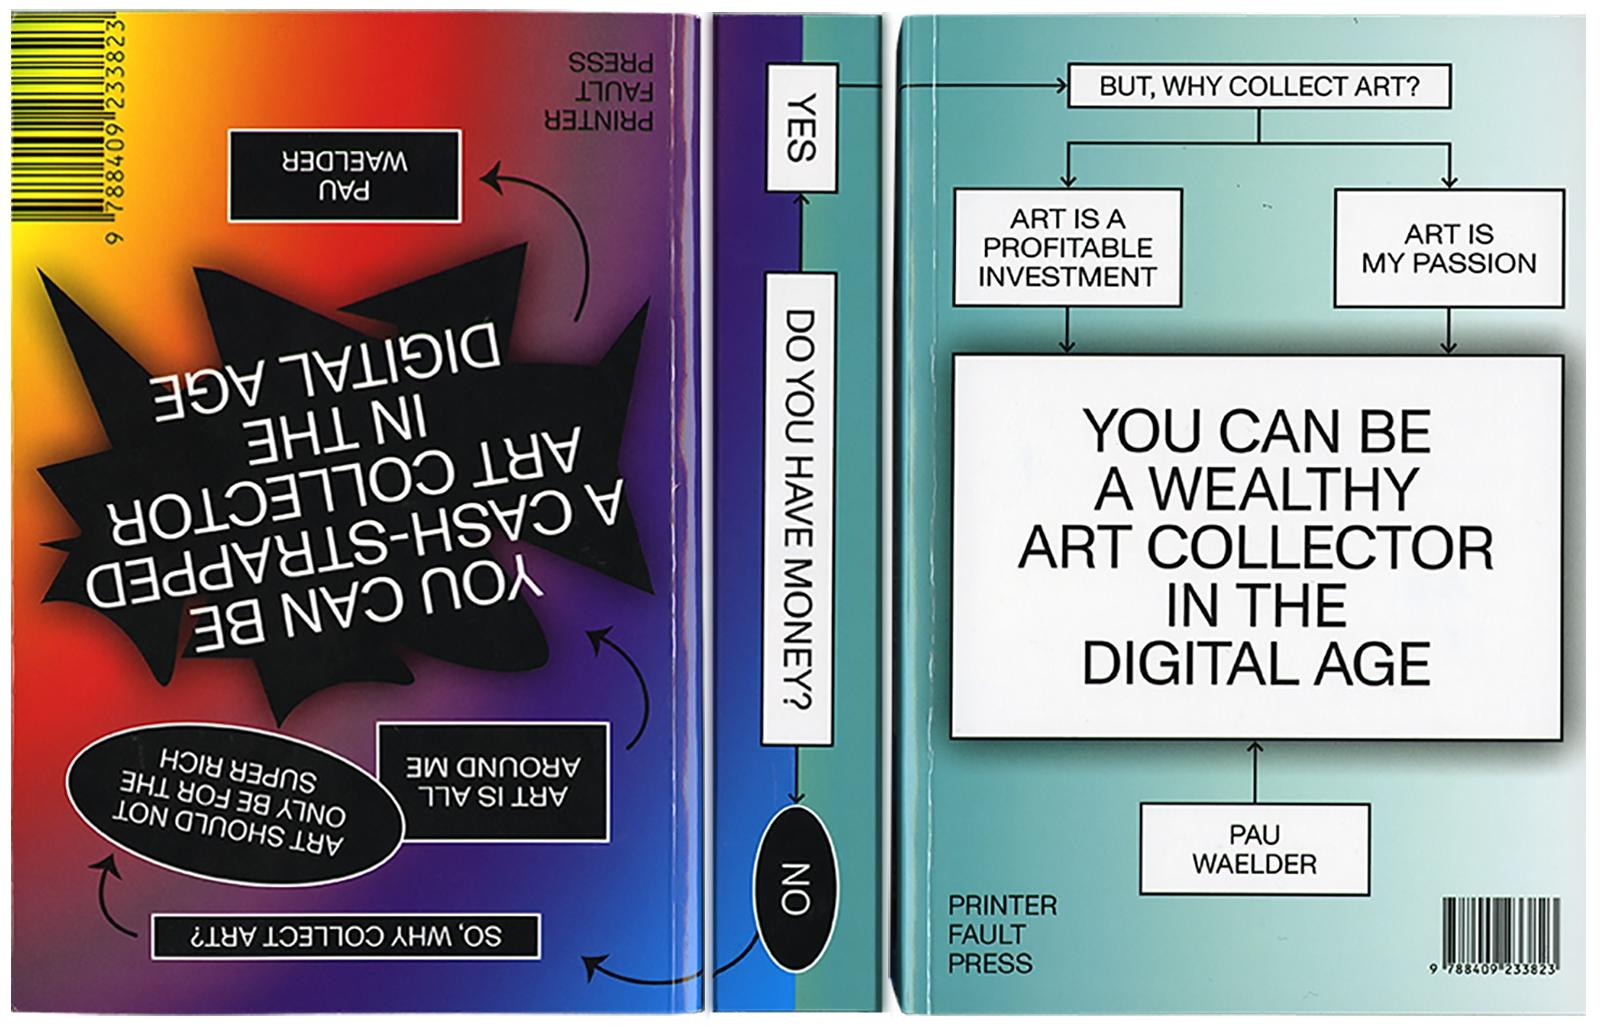 YOU CAN BE A WEALTHY/CASH-STRAPPED ART COLLECTOR IN THE DIGITAL AGE